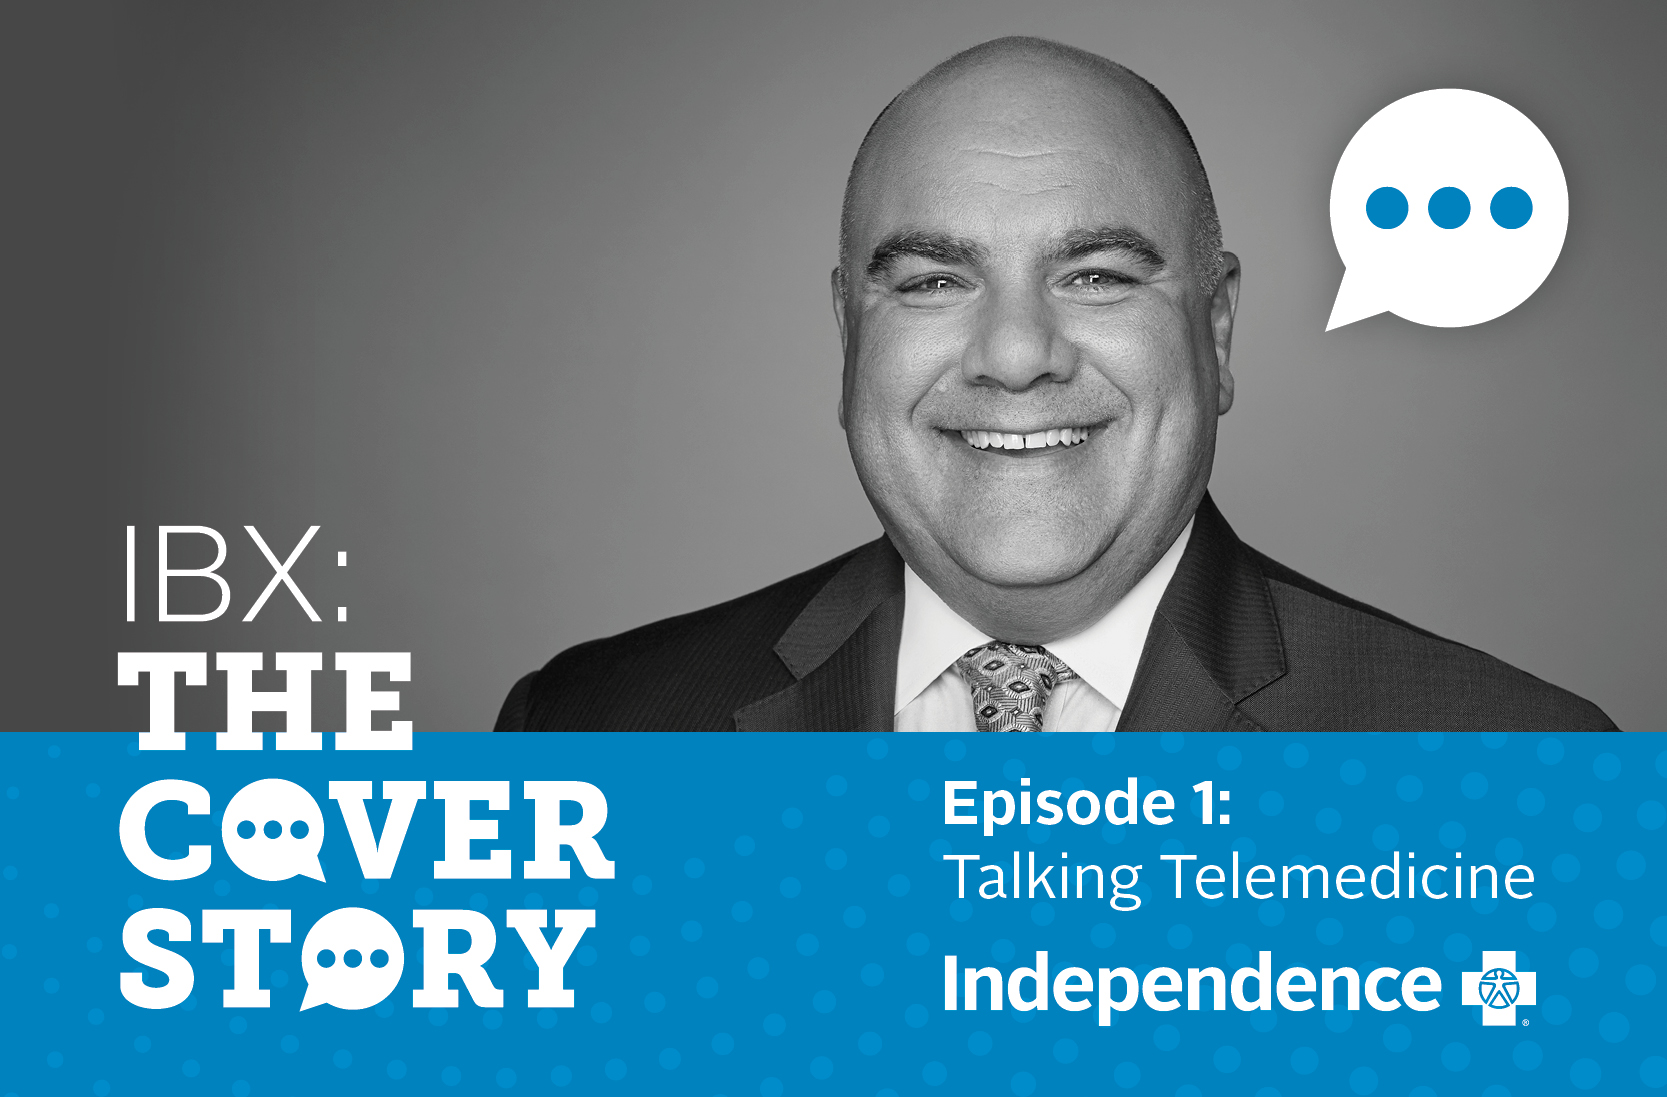 IBX: The Cover Story. Episode 1: Talking Telemedicine